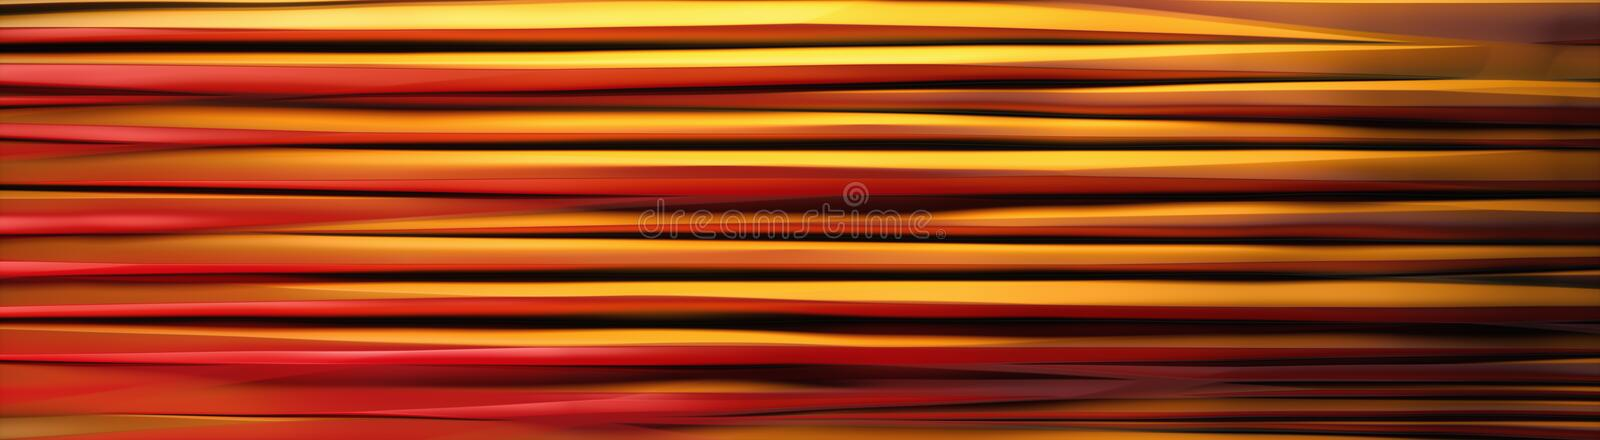 Wavy Band Background Red Yellow lines banner stock illustration